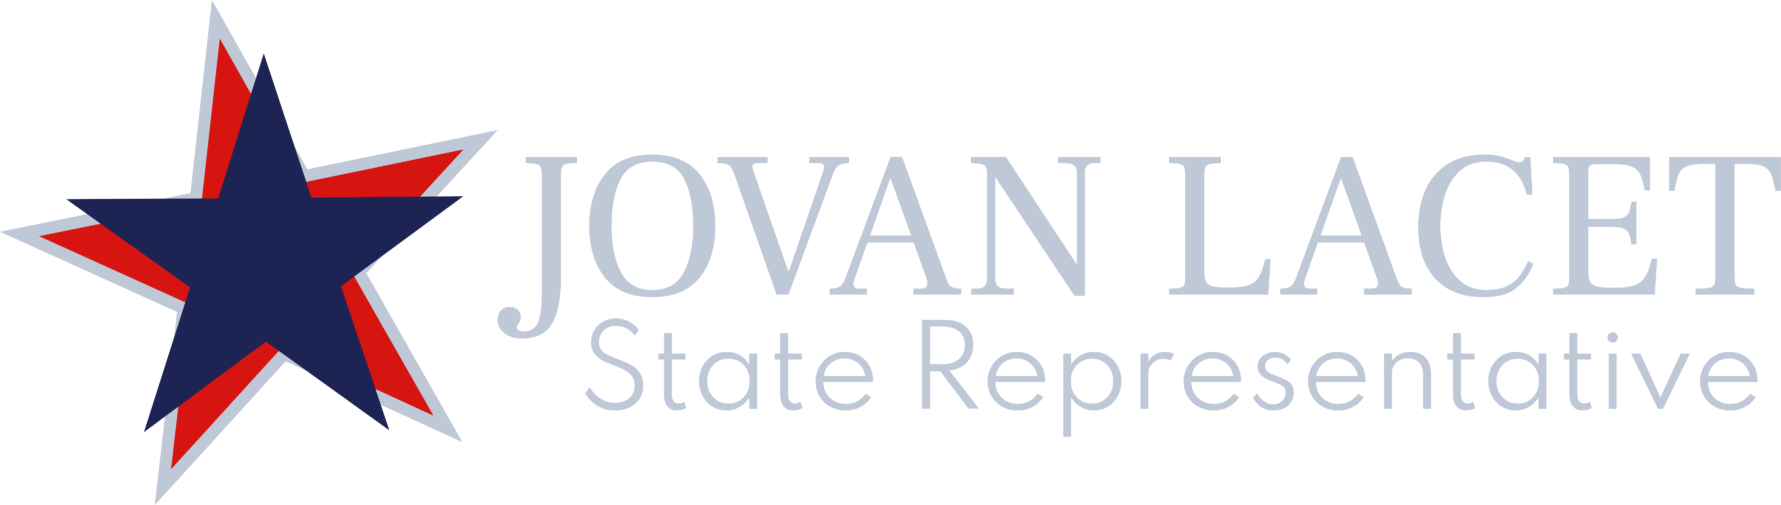 Jovan Lacet for State Representative